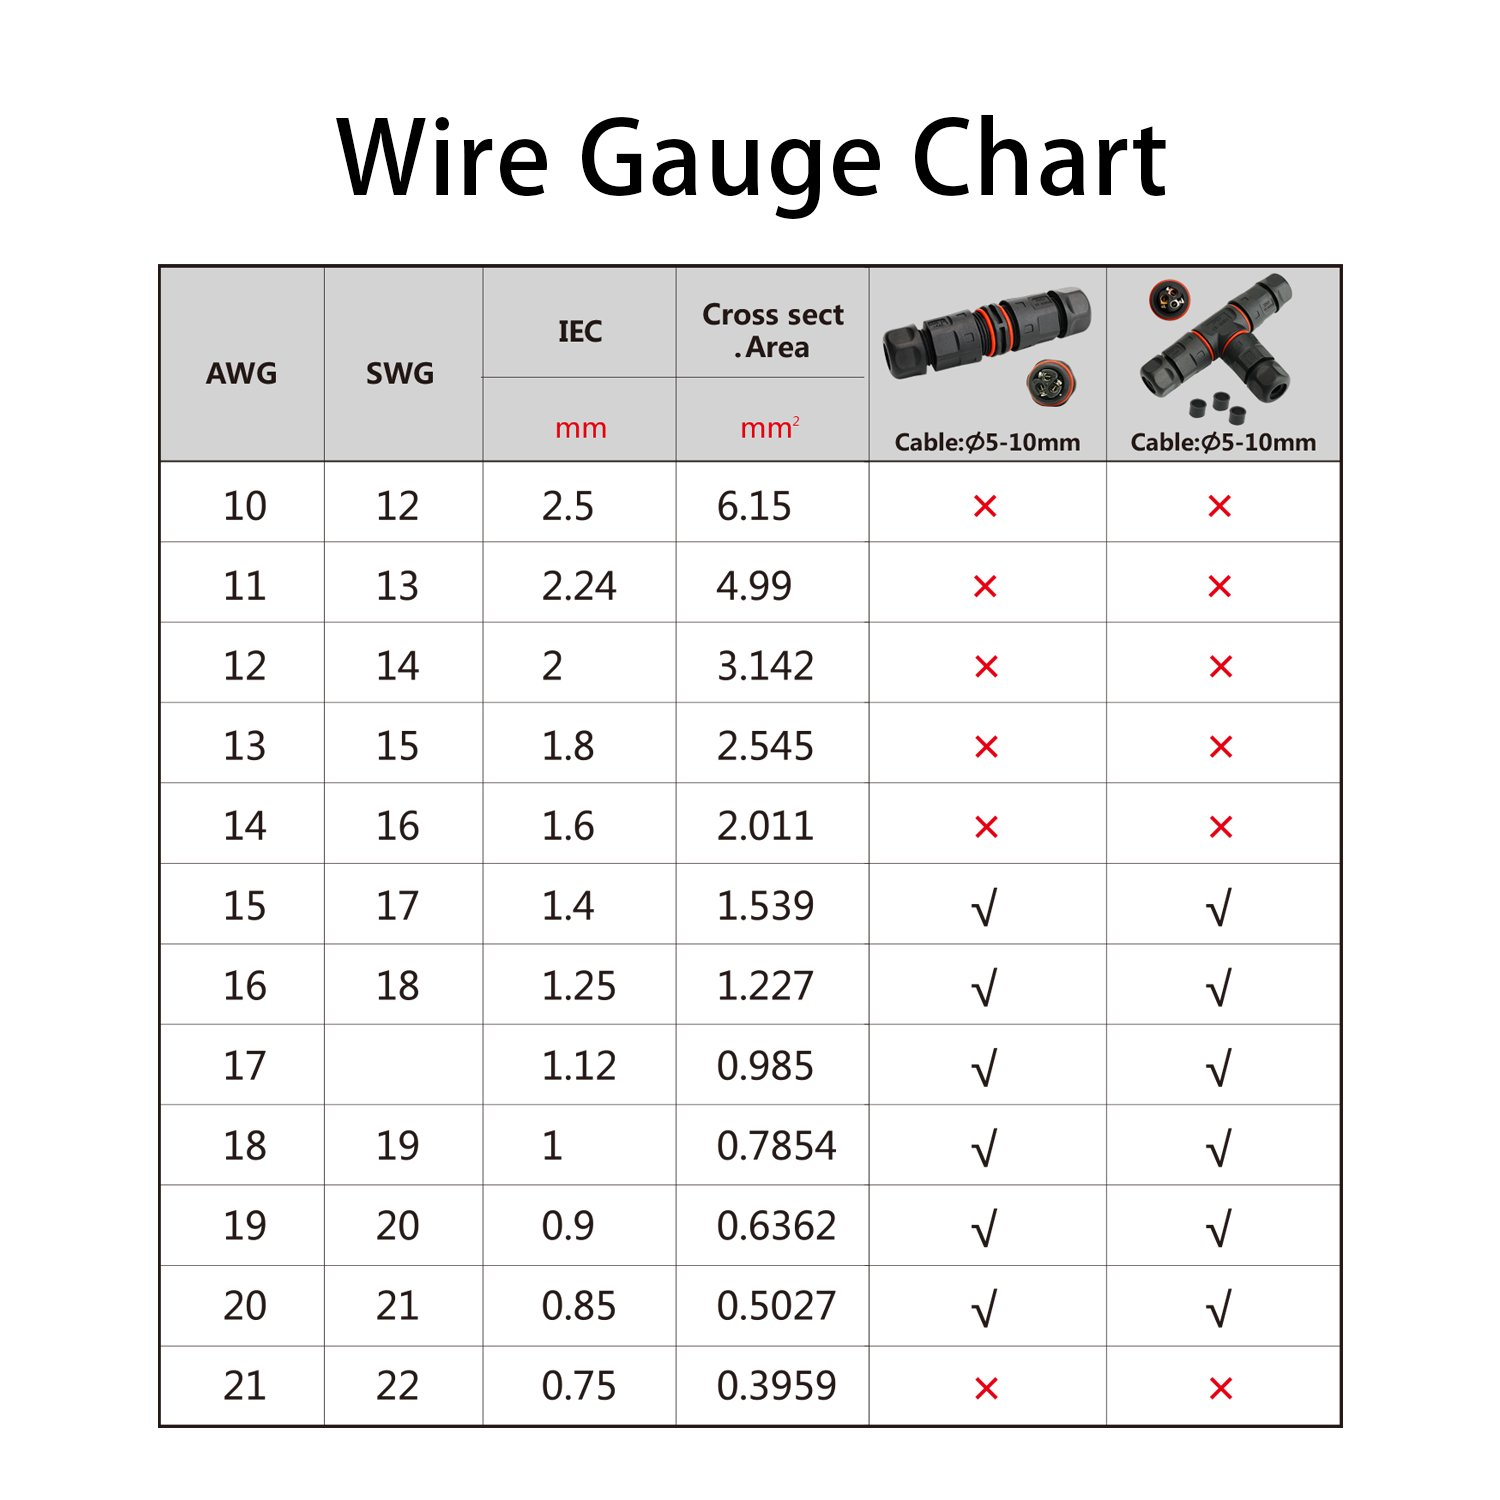 Awesome electrical cable size chart amps images electrical great electrical cable size chart amps ideas electrical circuit greentooth